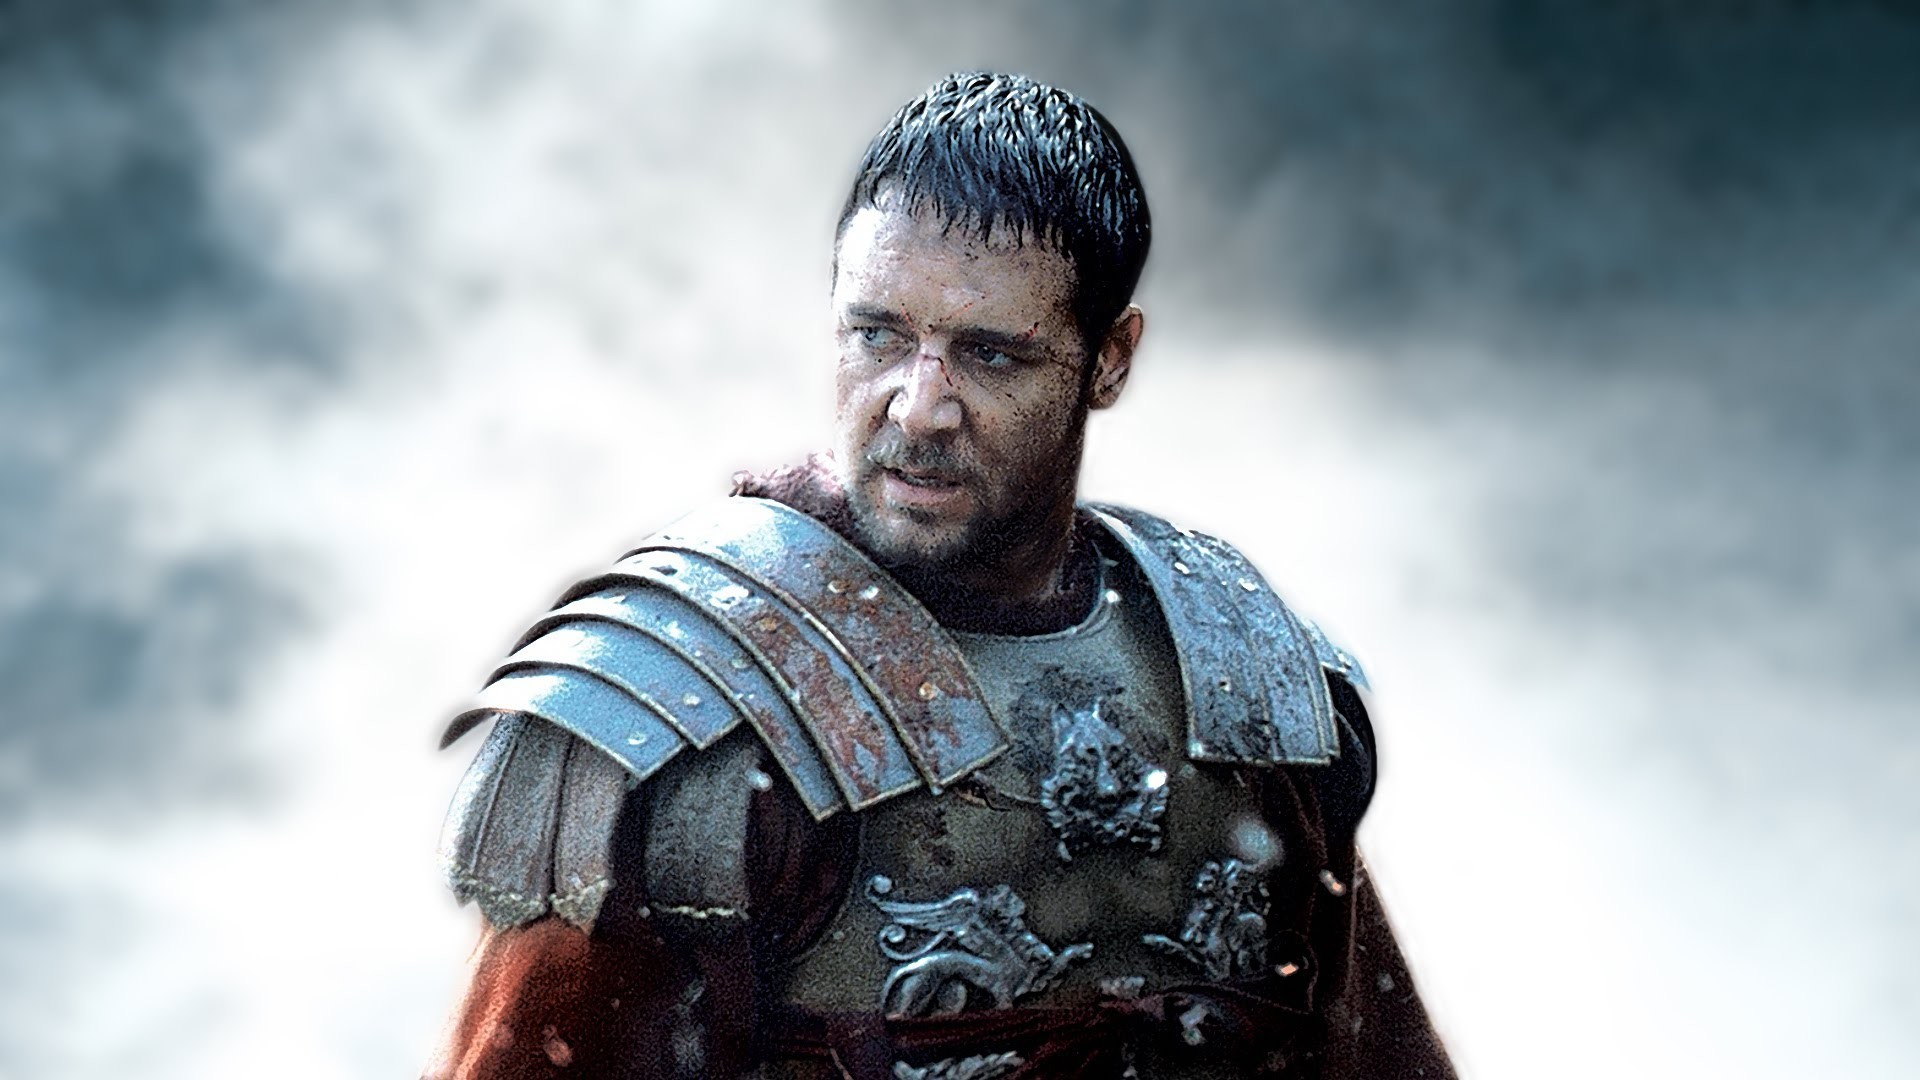 1920x1080 - Russell Crowe Wallpapers 12